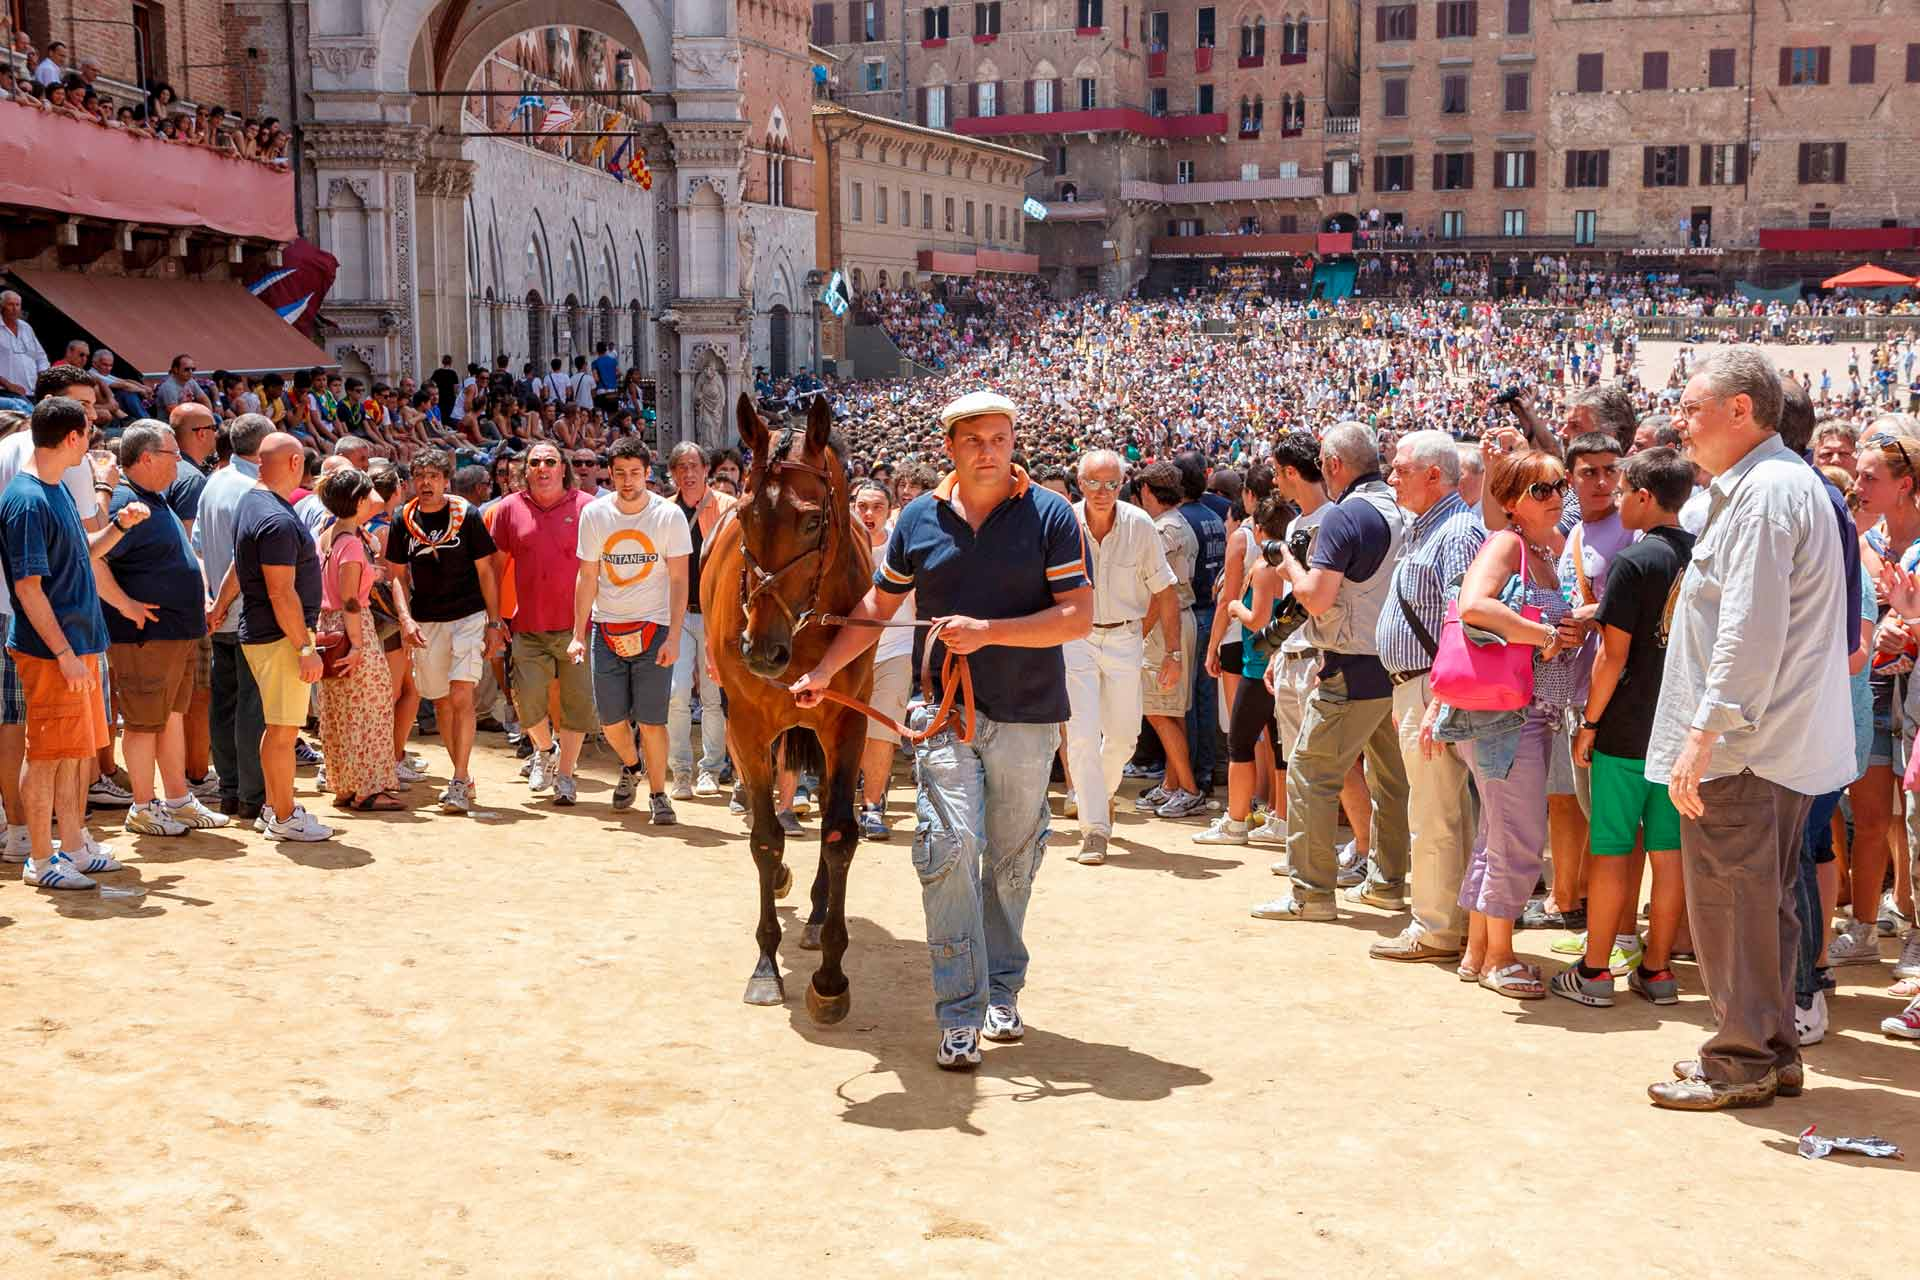 THE DRAW ? When the contrada receives the drawn horse, the Bararesco takes it over until the end of the Palio. The horse cannot be replaced for any reason.